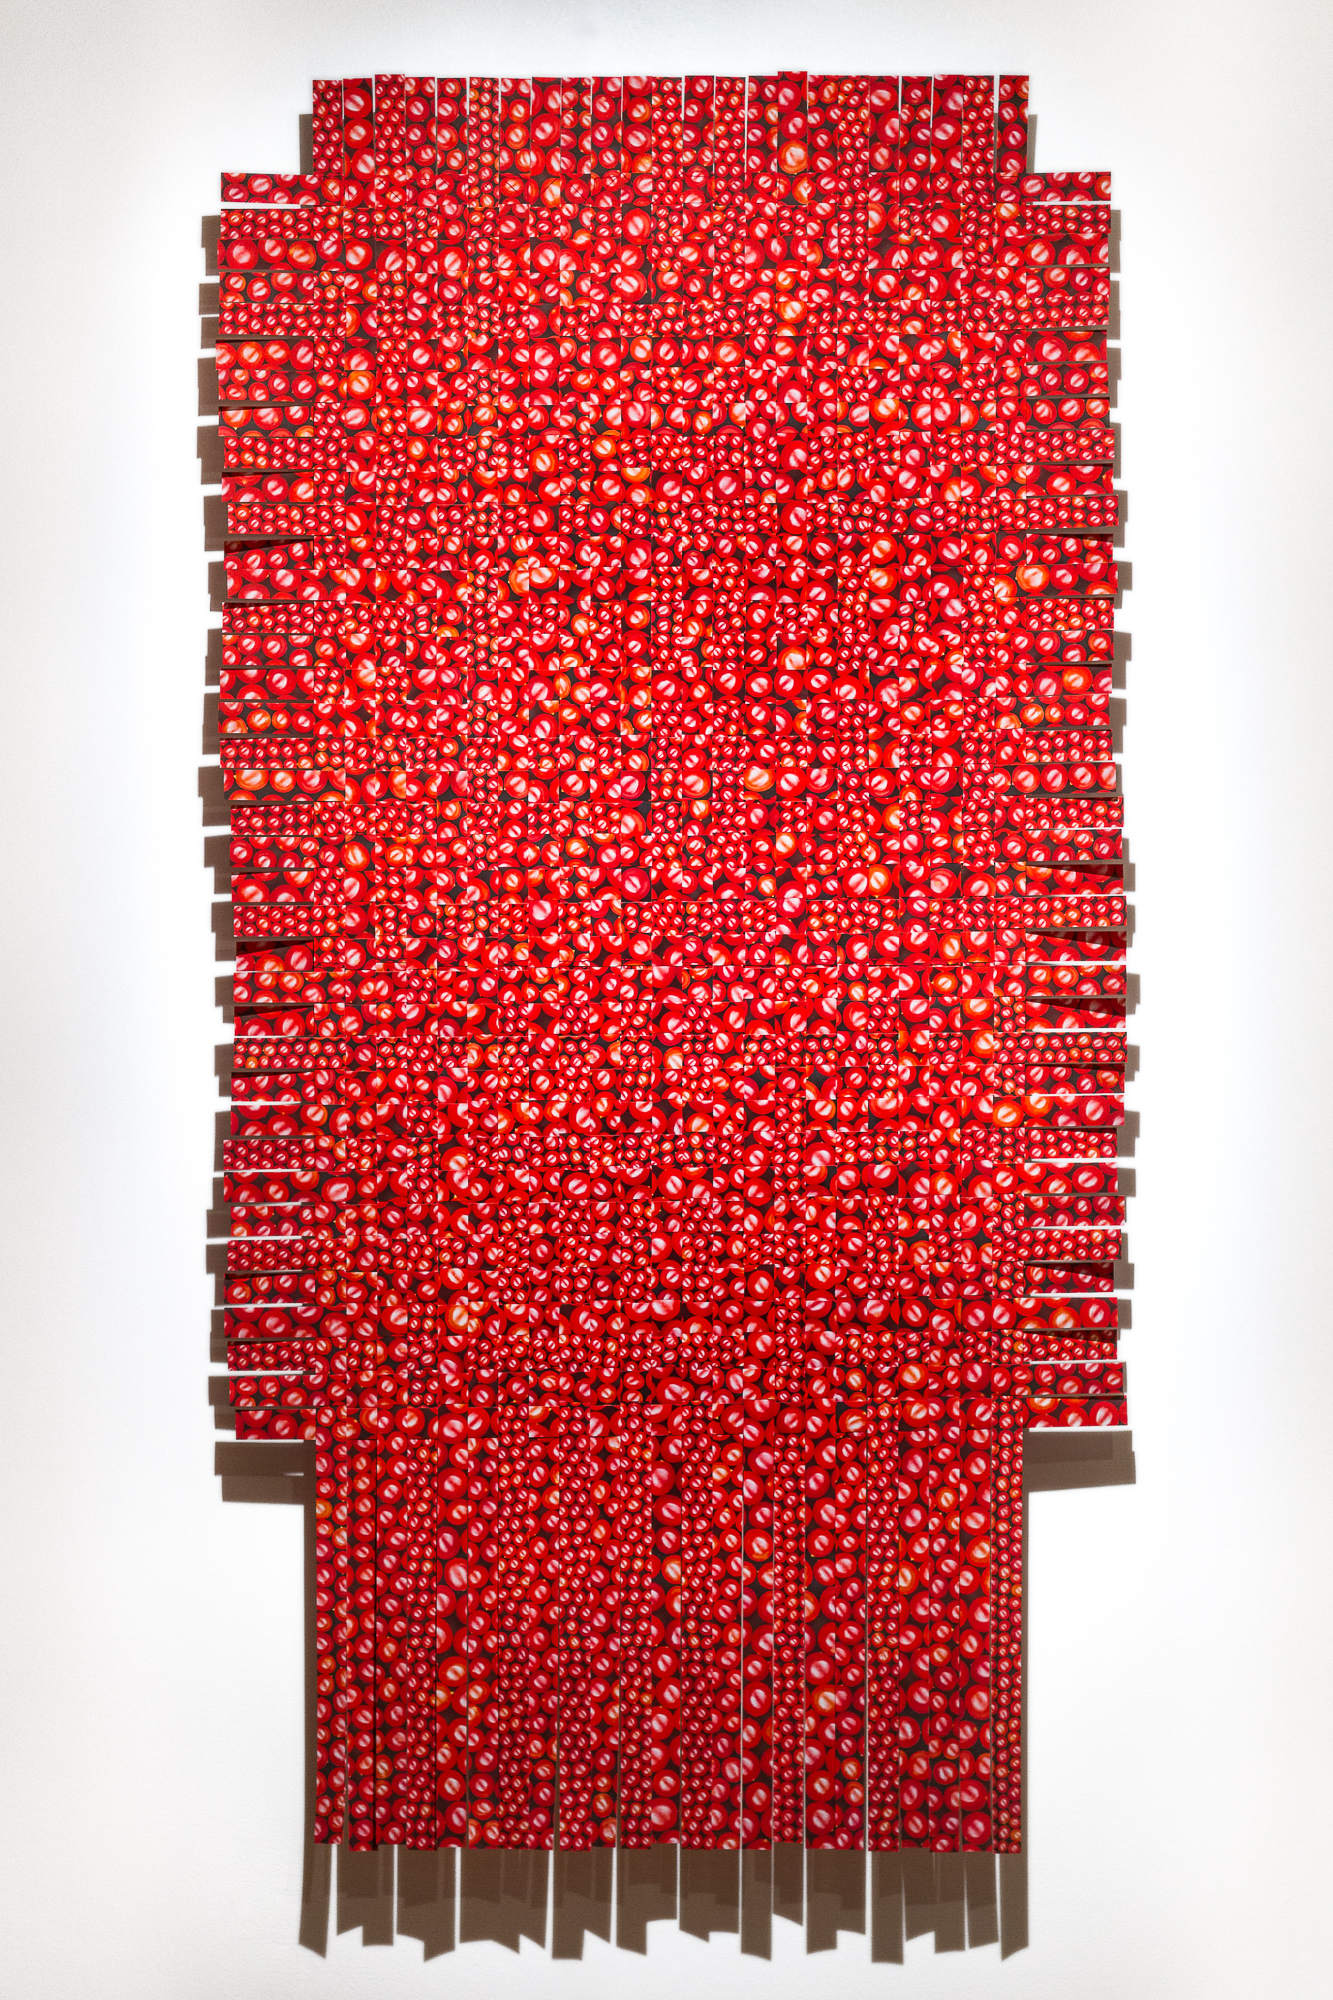 Hemoglobin, 2018.   Staged and photographed cranberries arranged in an infinity pattern and printed. Image cut into strips and woven. Archival print 7' X 3.5'.